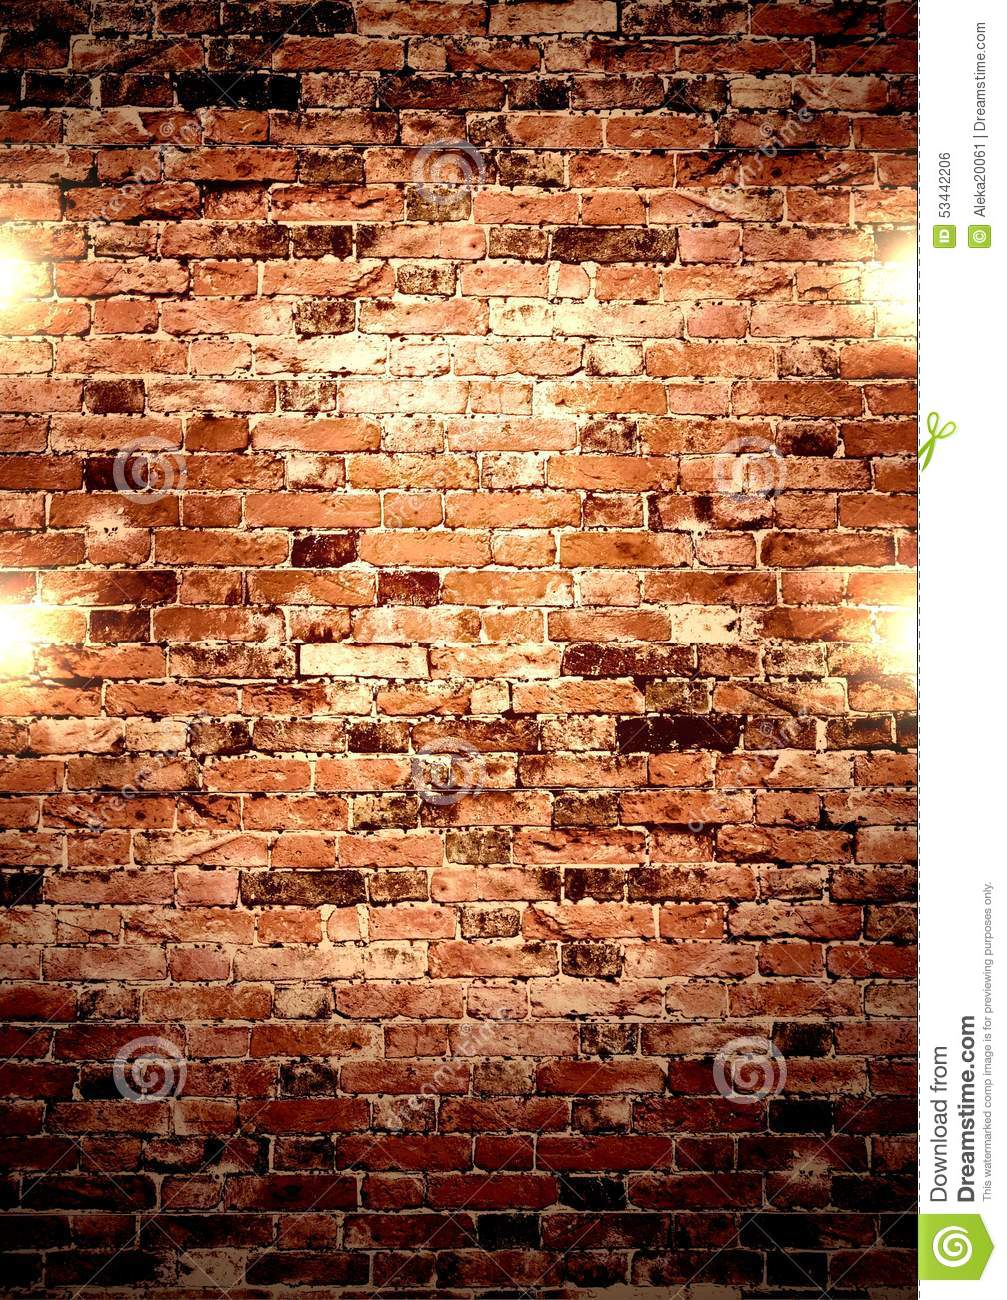 Wall Lights On Brick : Brown Wall With Lights. Stock Photo - Image: 53442206